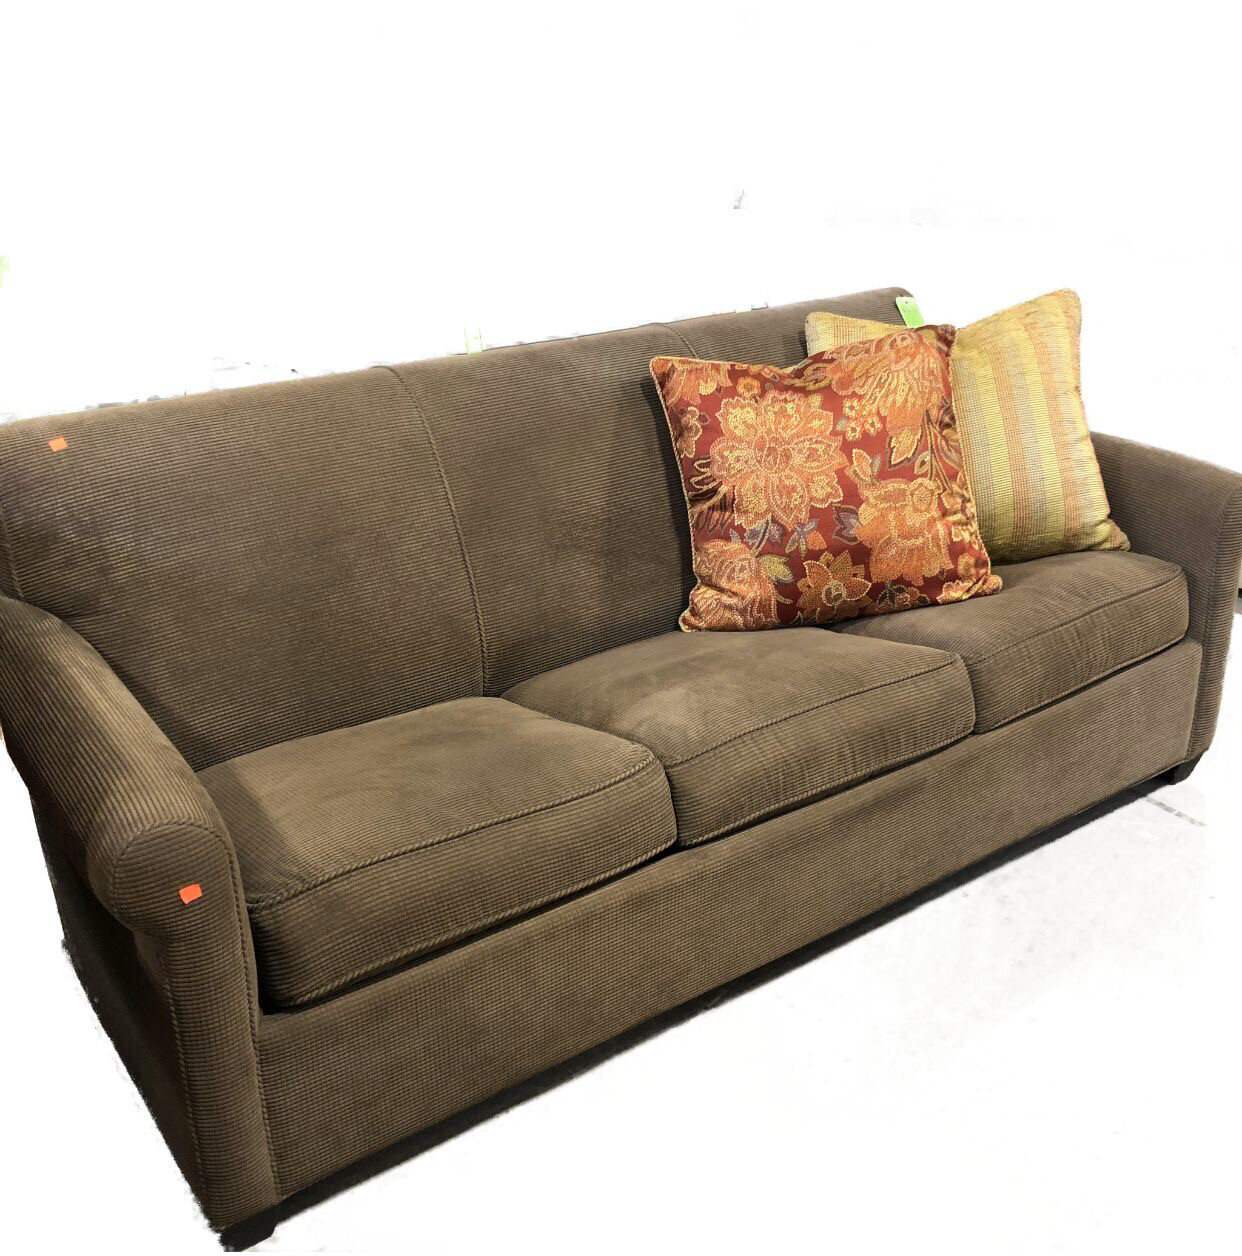 Brown Corduroy Sofabed